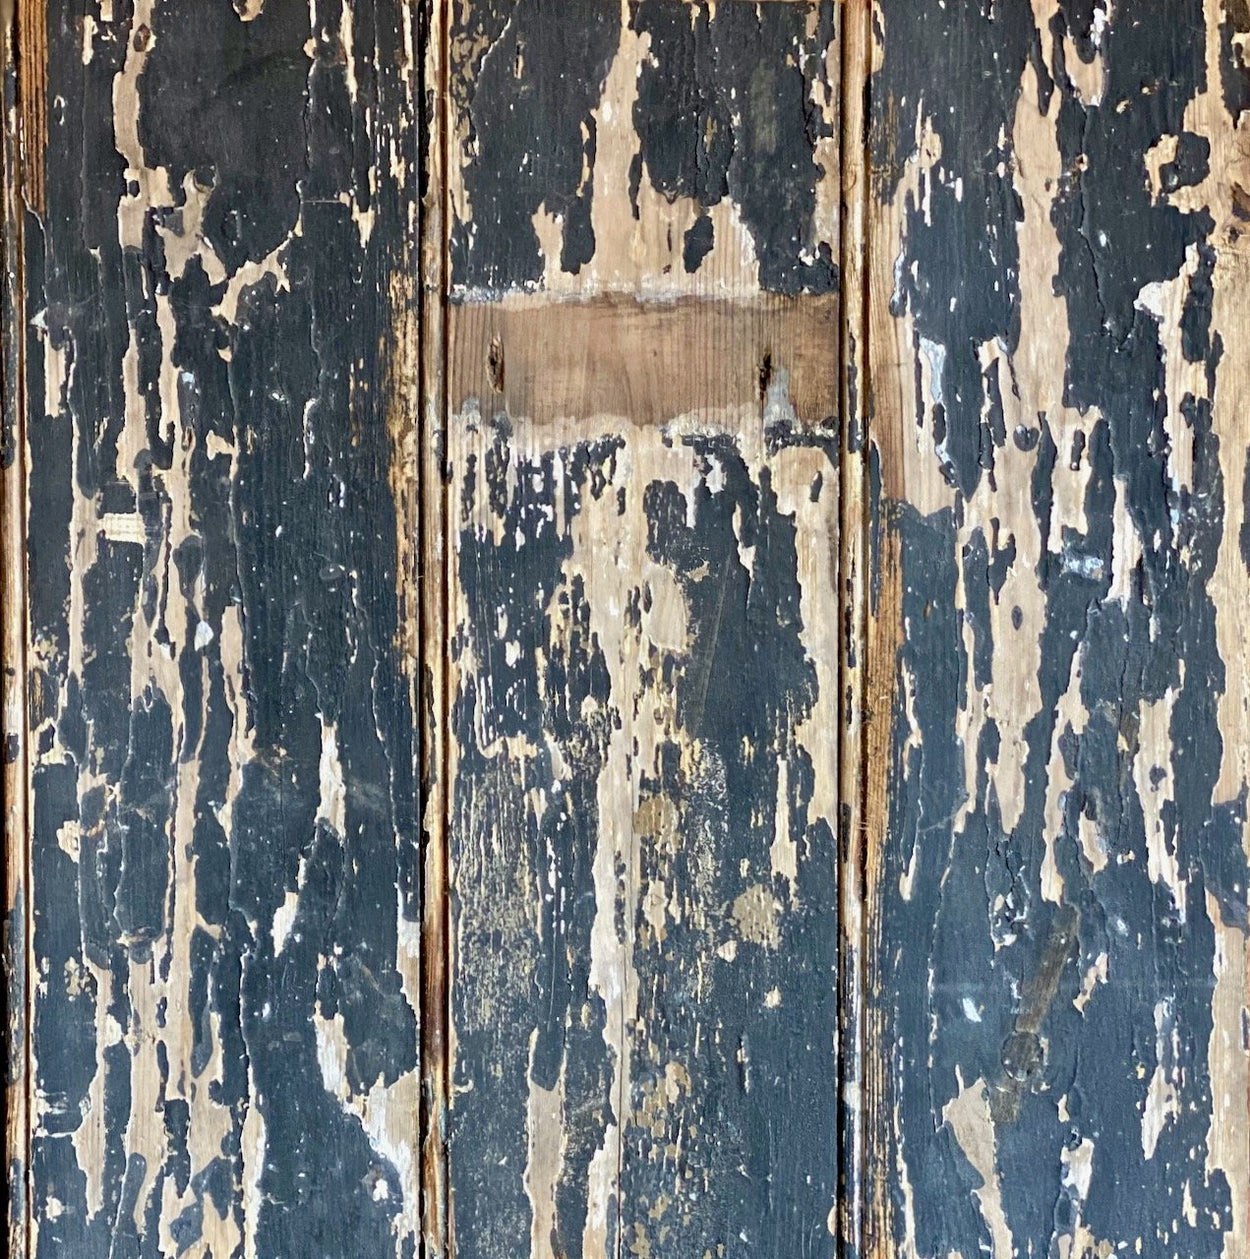 Sample of Reclaimed Bead Jointed Wall Cladding